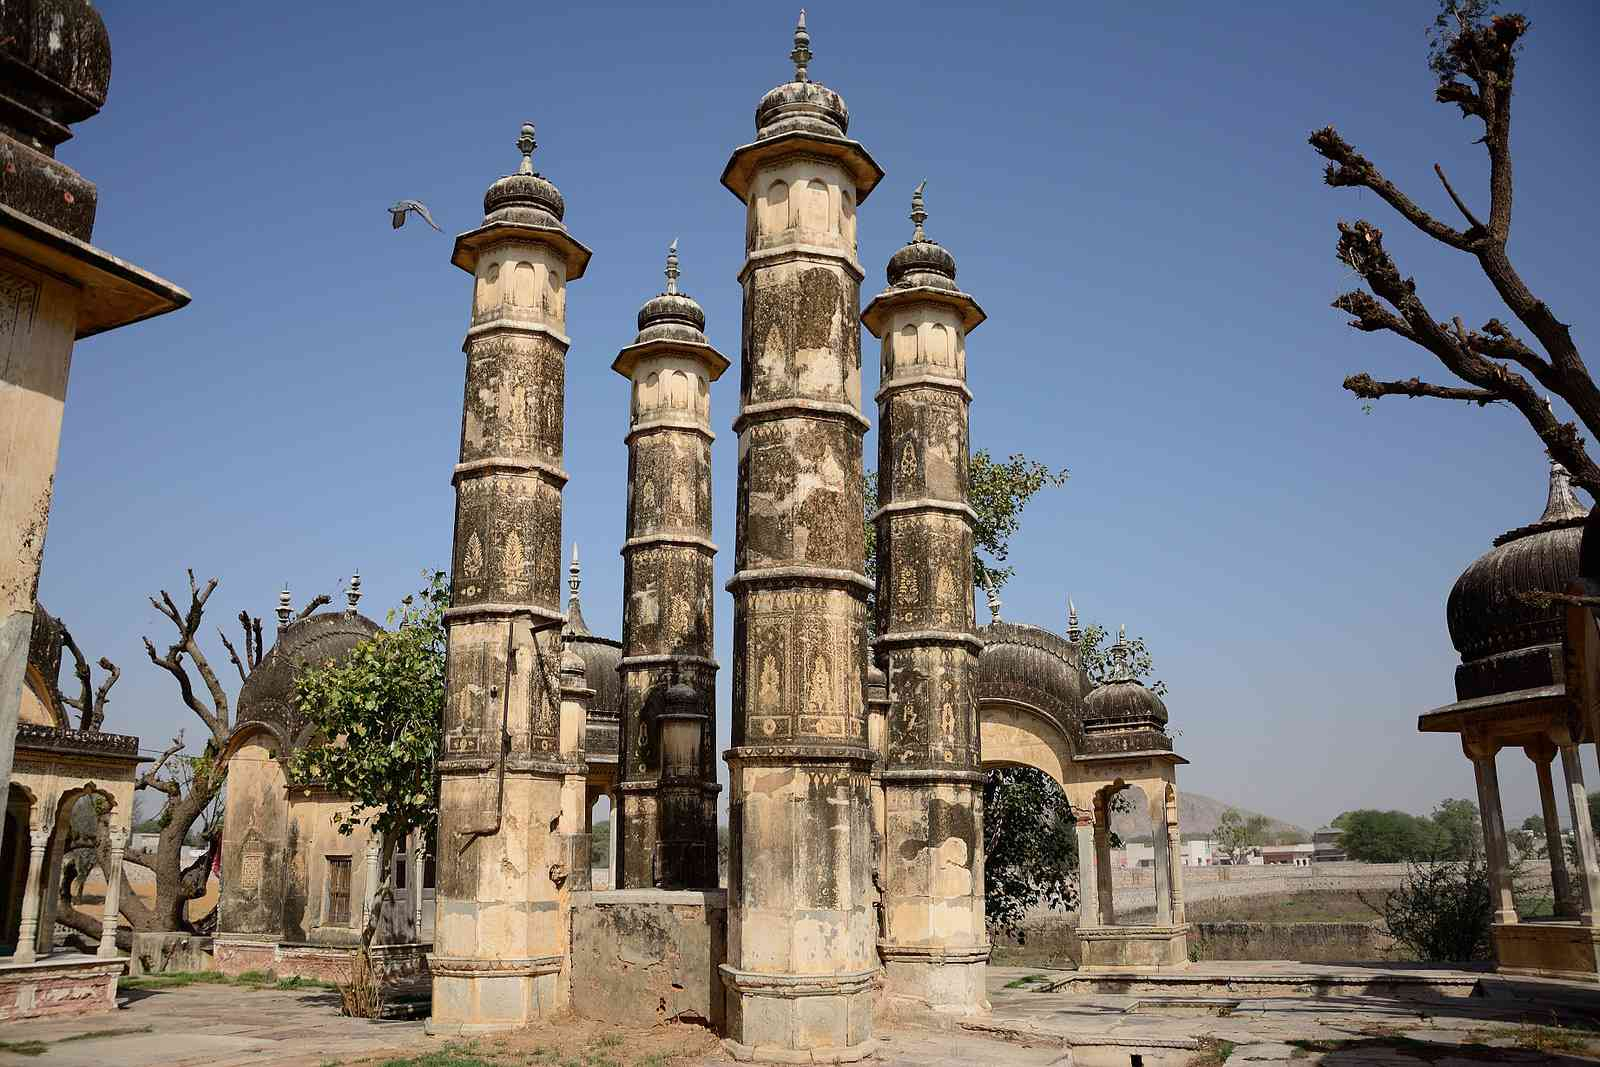 Jhunjhunu - A well with minarets and 'chhattris'